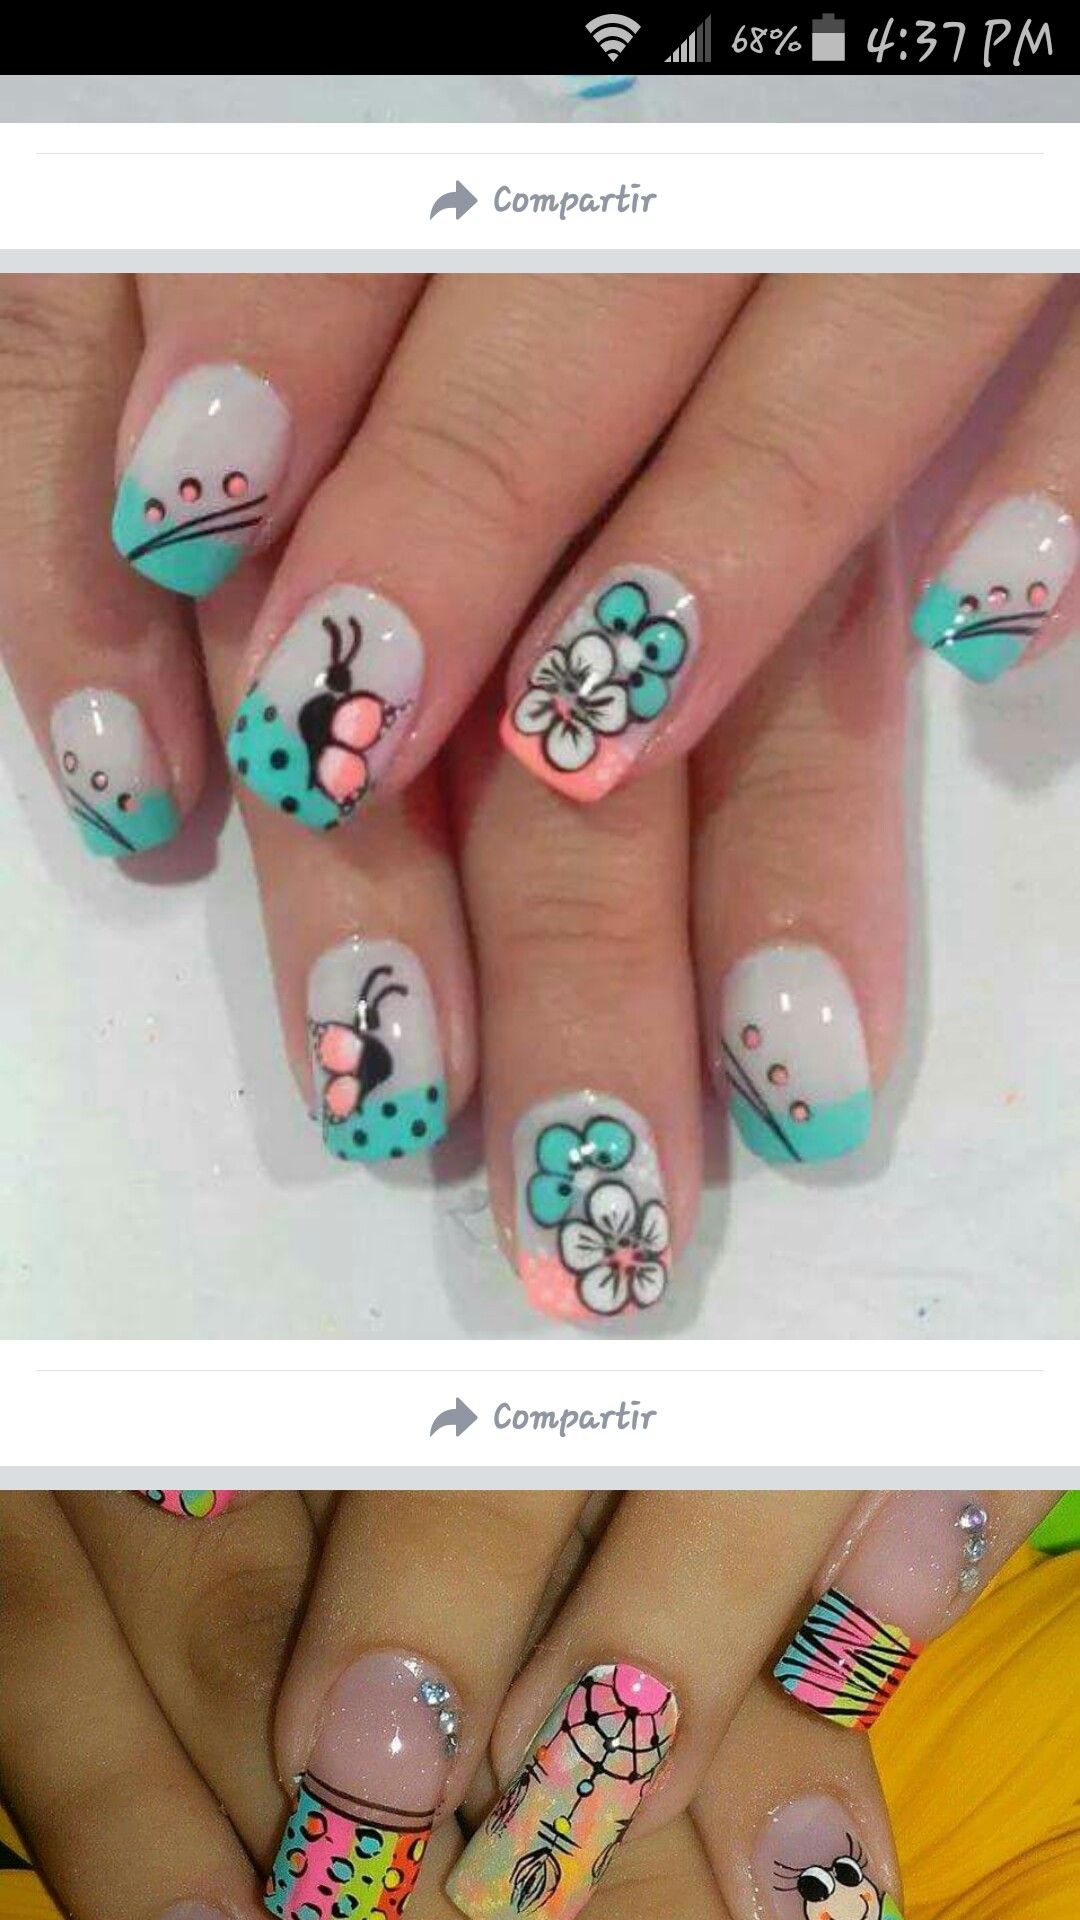 Pin by Vane on Uñas | Pinterest | Nail pics and Manicure